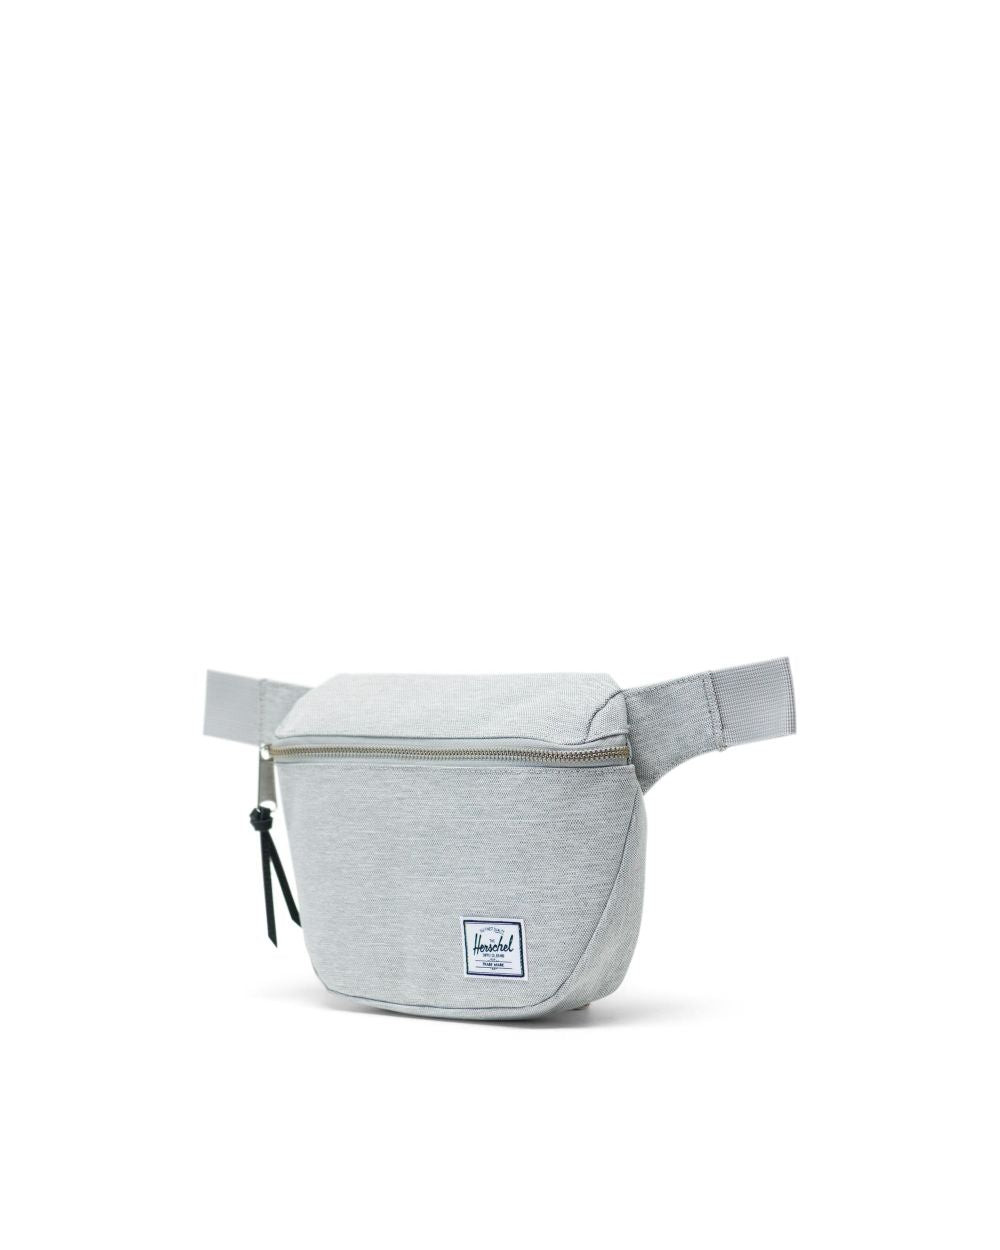 HERSCHEL - FIFTEEN HIP PACK IN LIGHT GREY CROSSHATCH